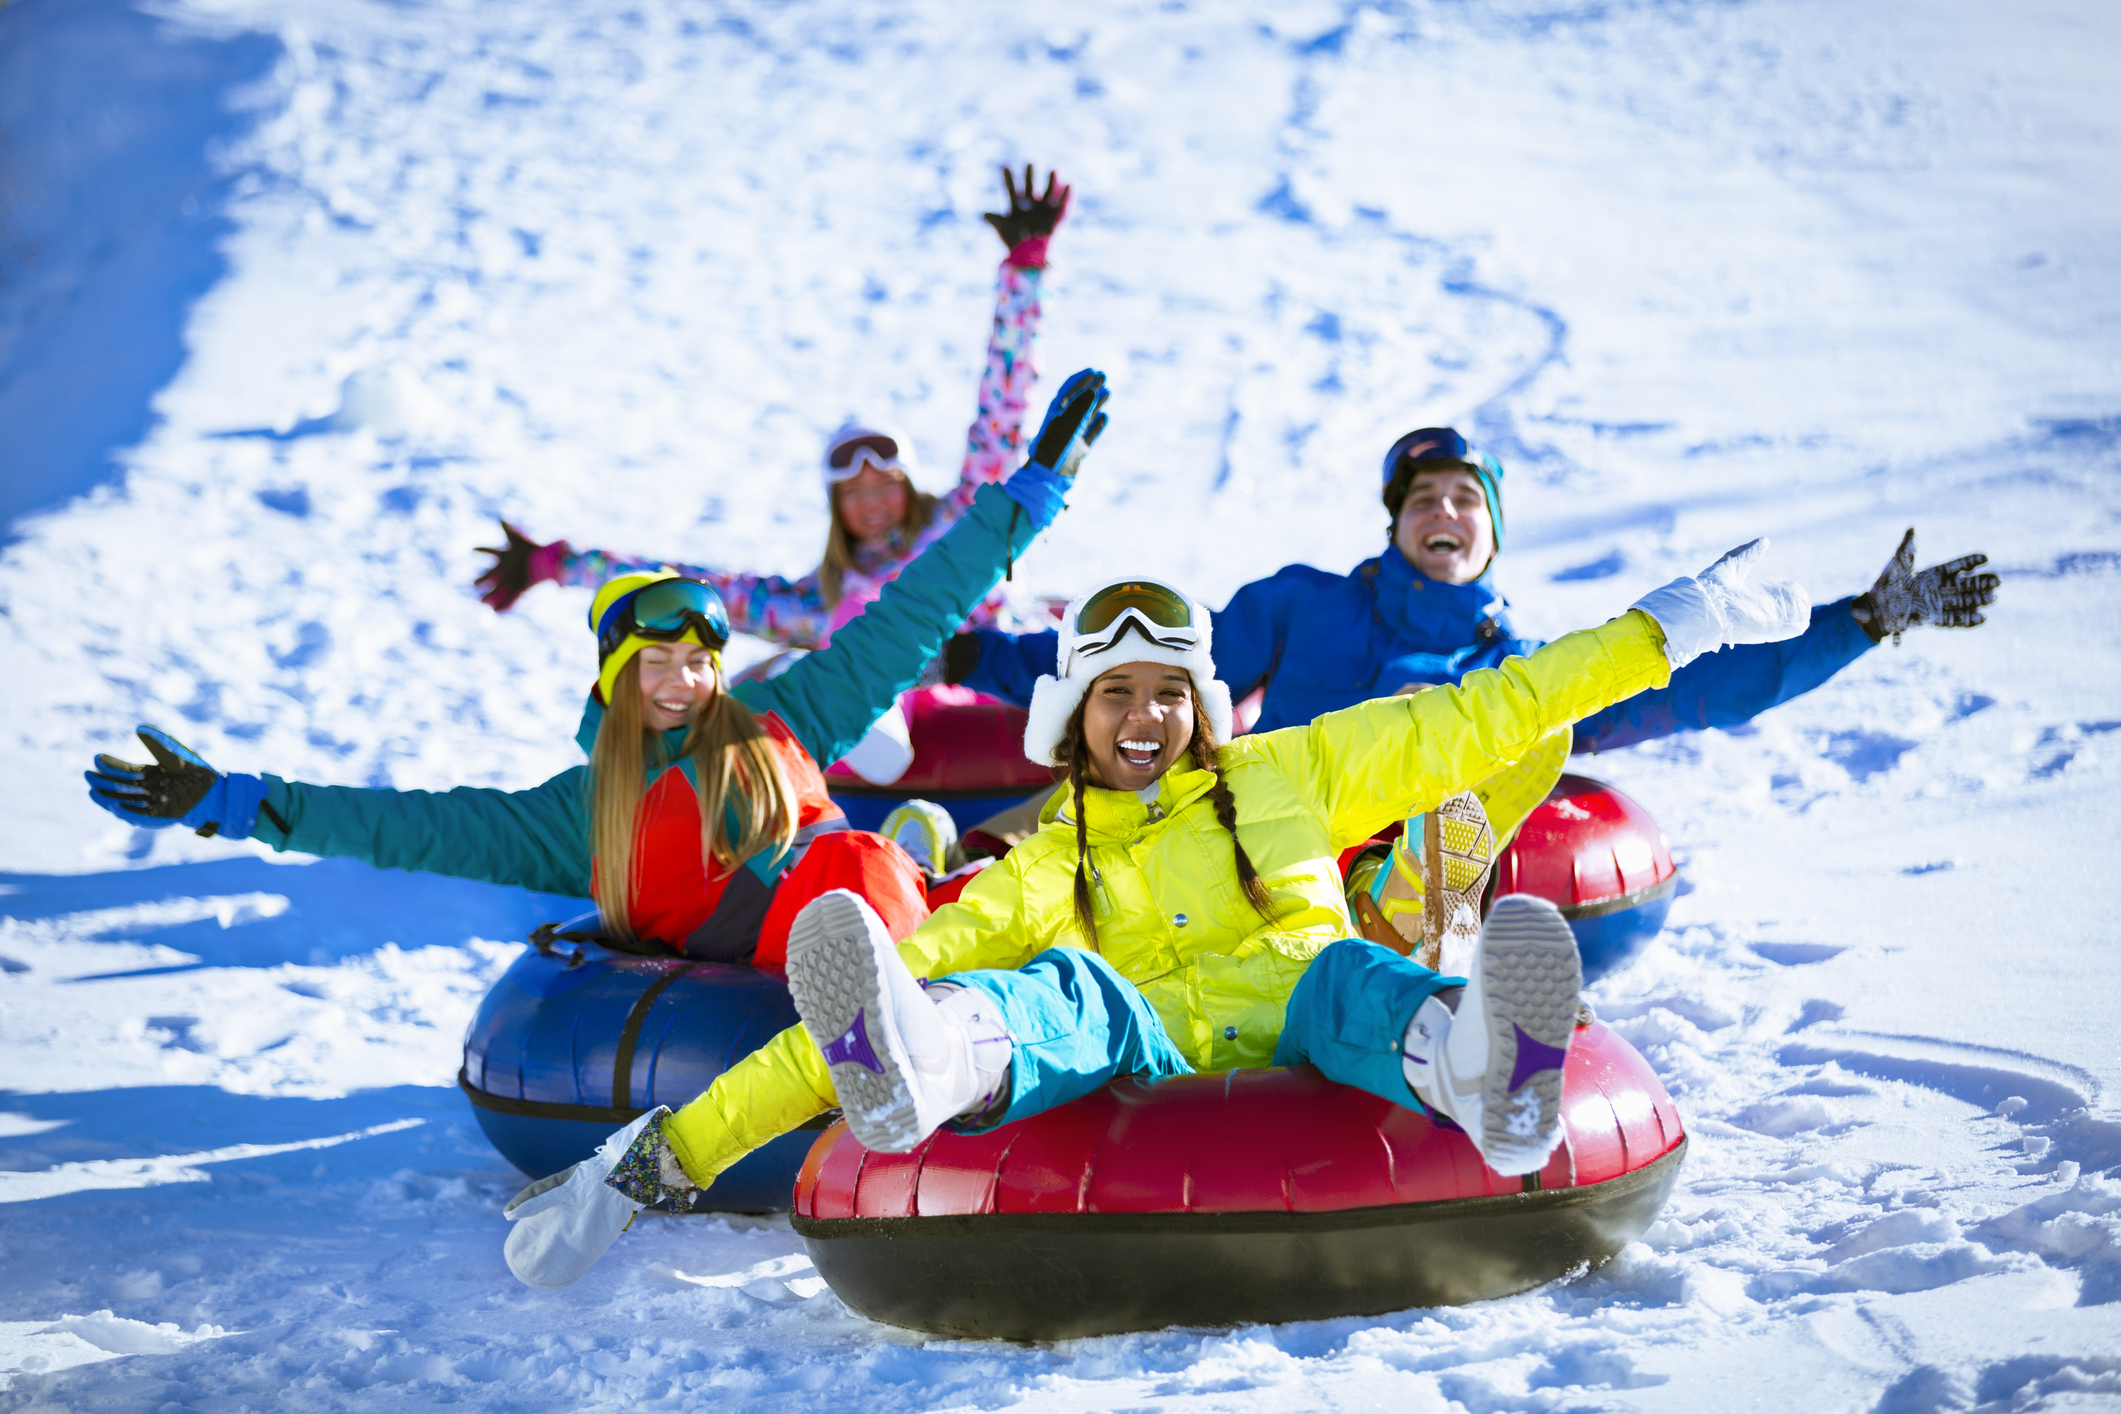 Snow tubing at Stay Blue Ridge